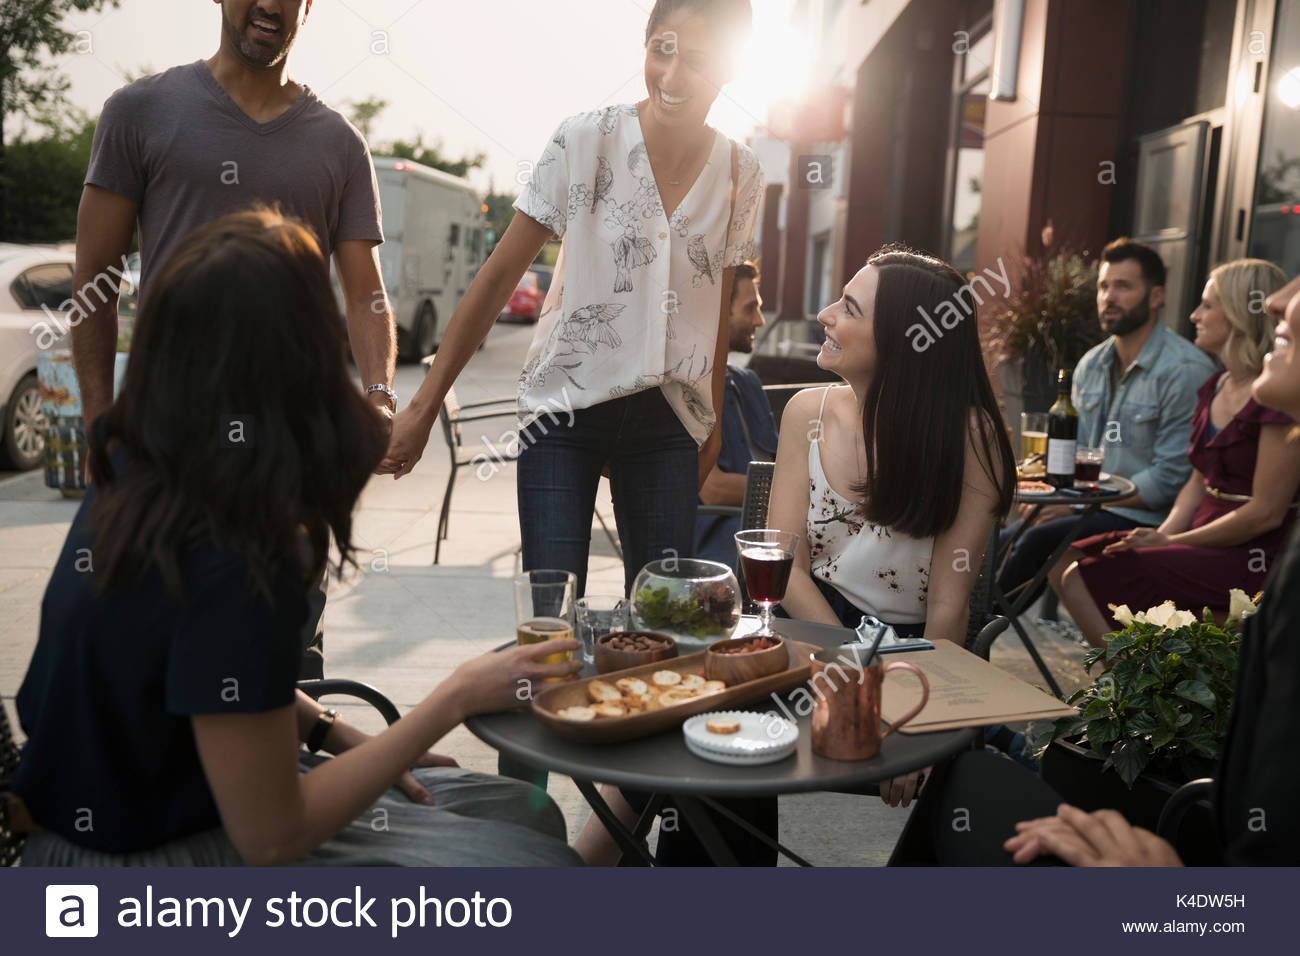 Woman greeting friends at sidewalk cafe - Stock Image